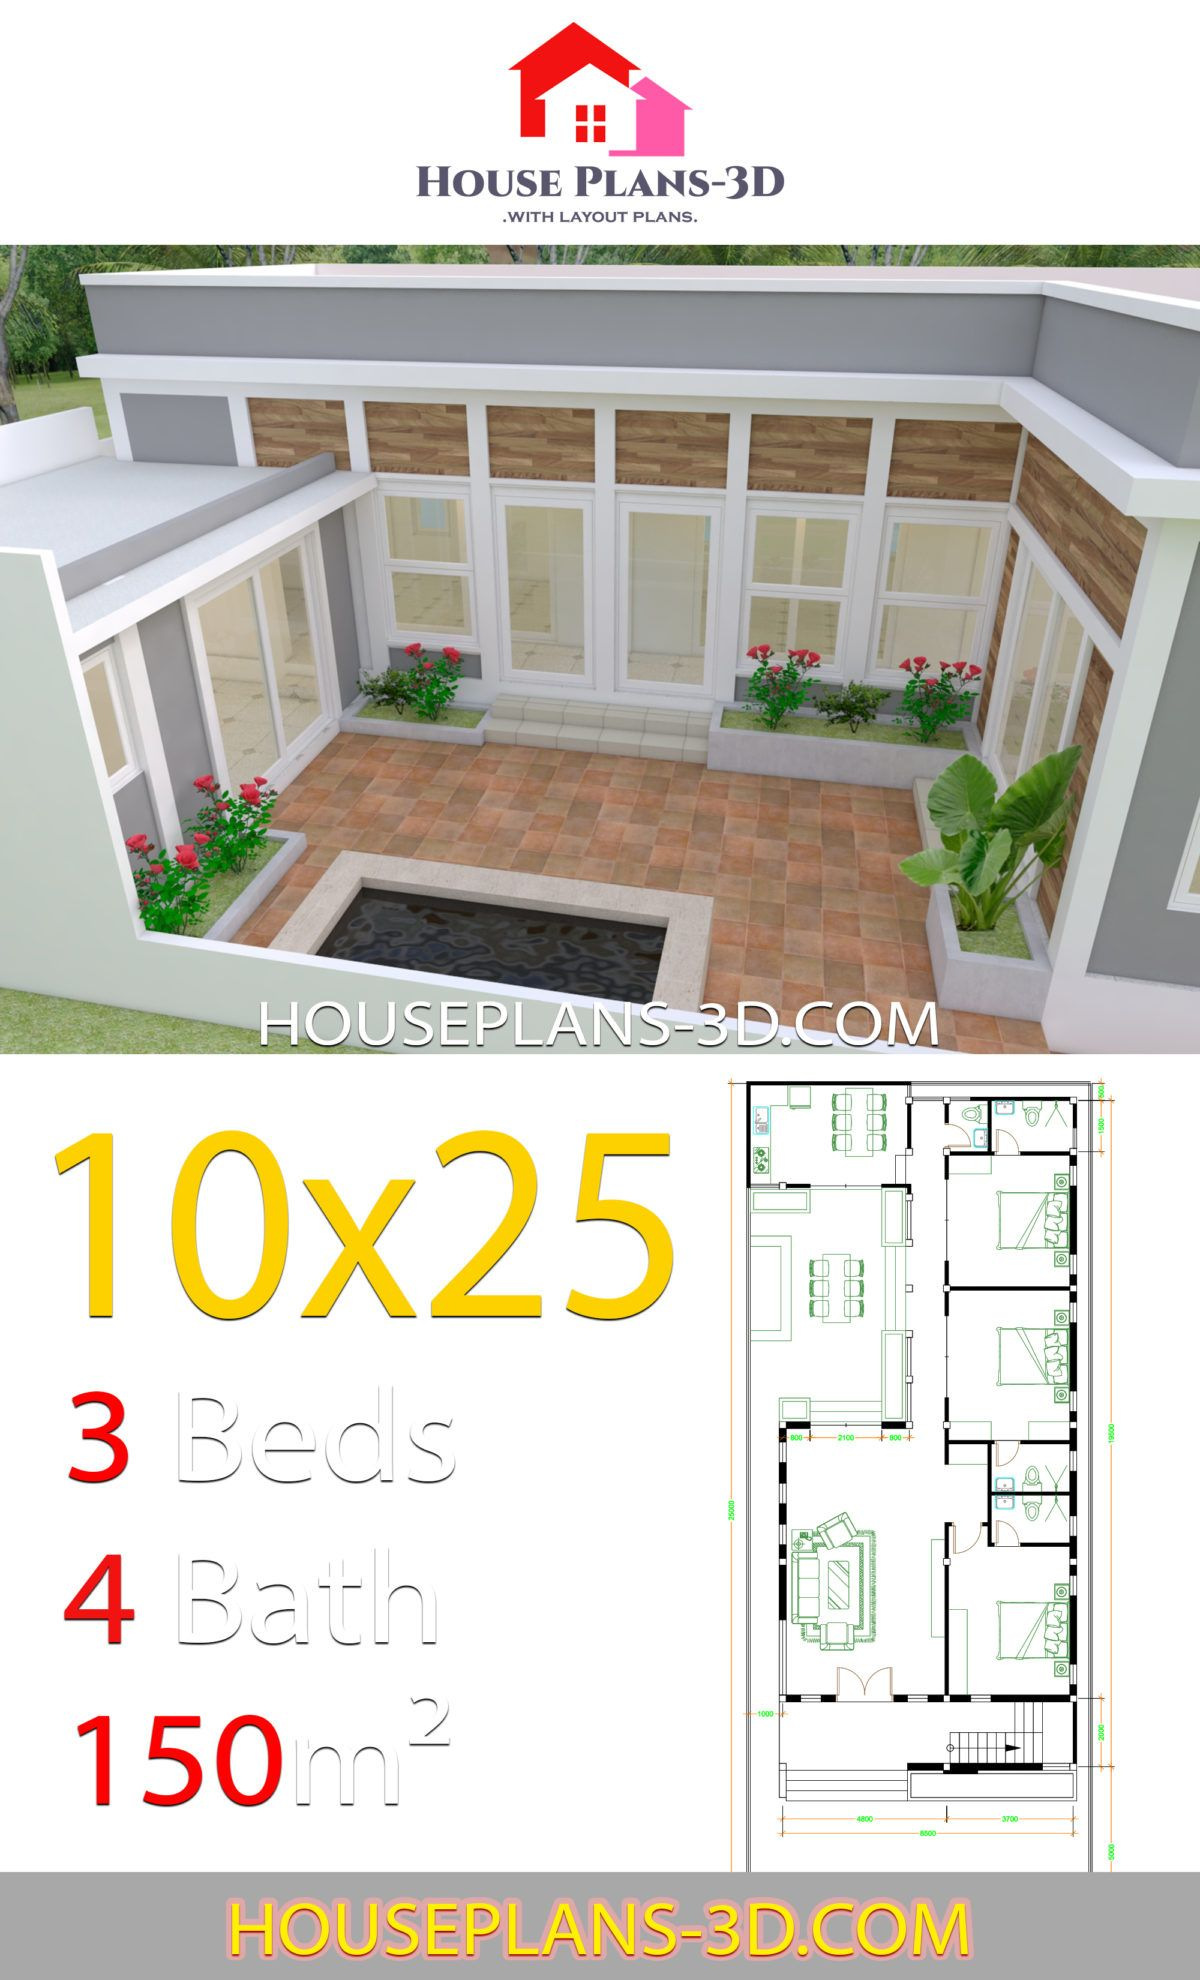 House Design Plans 10x25 With 3 Bedrooms House Plans 3d In 2020 Pallet House Plans Small House Plans House Plans